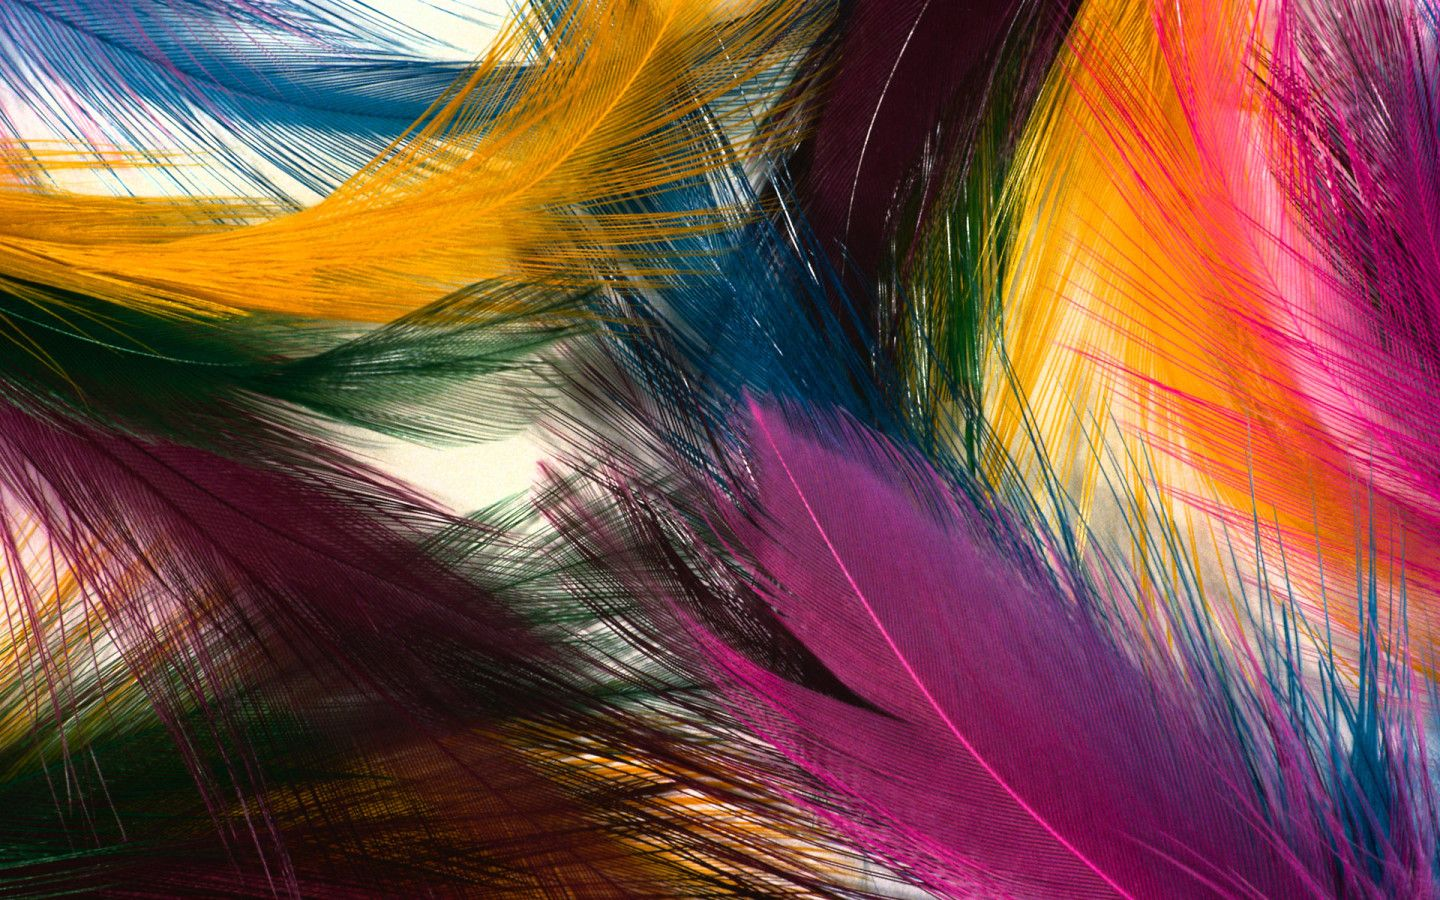 Creative Wallpaper Multi Colored Feathers Colors of The world 1440x900